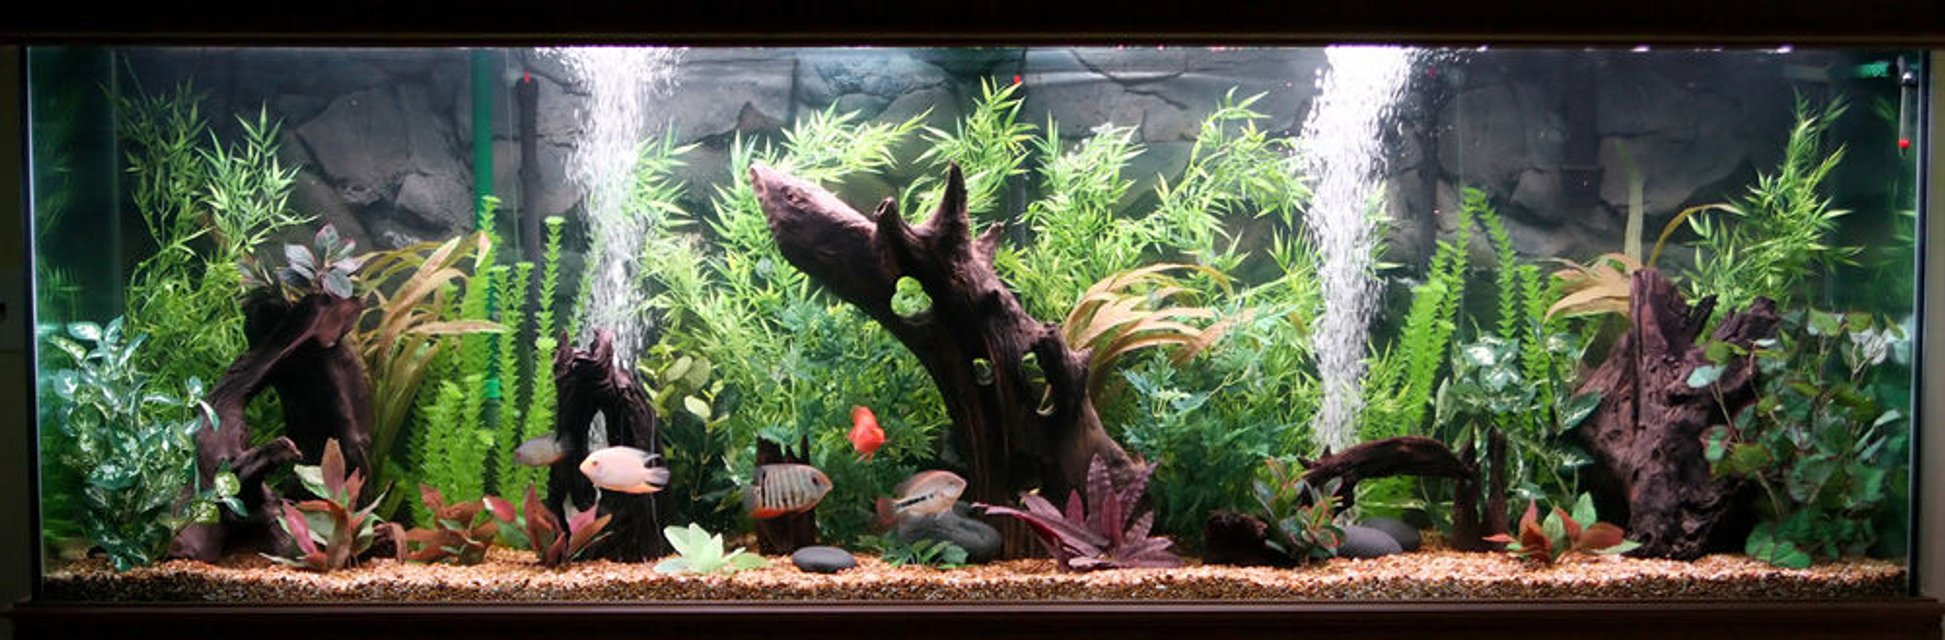 Rated #72: 300 Gallons Freshwater Fish Tank - 300 Gallon Central and South American Cichlid Tank.